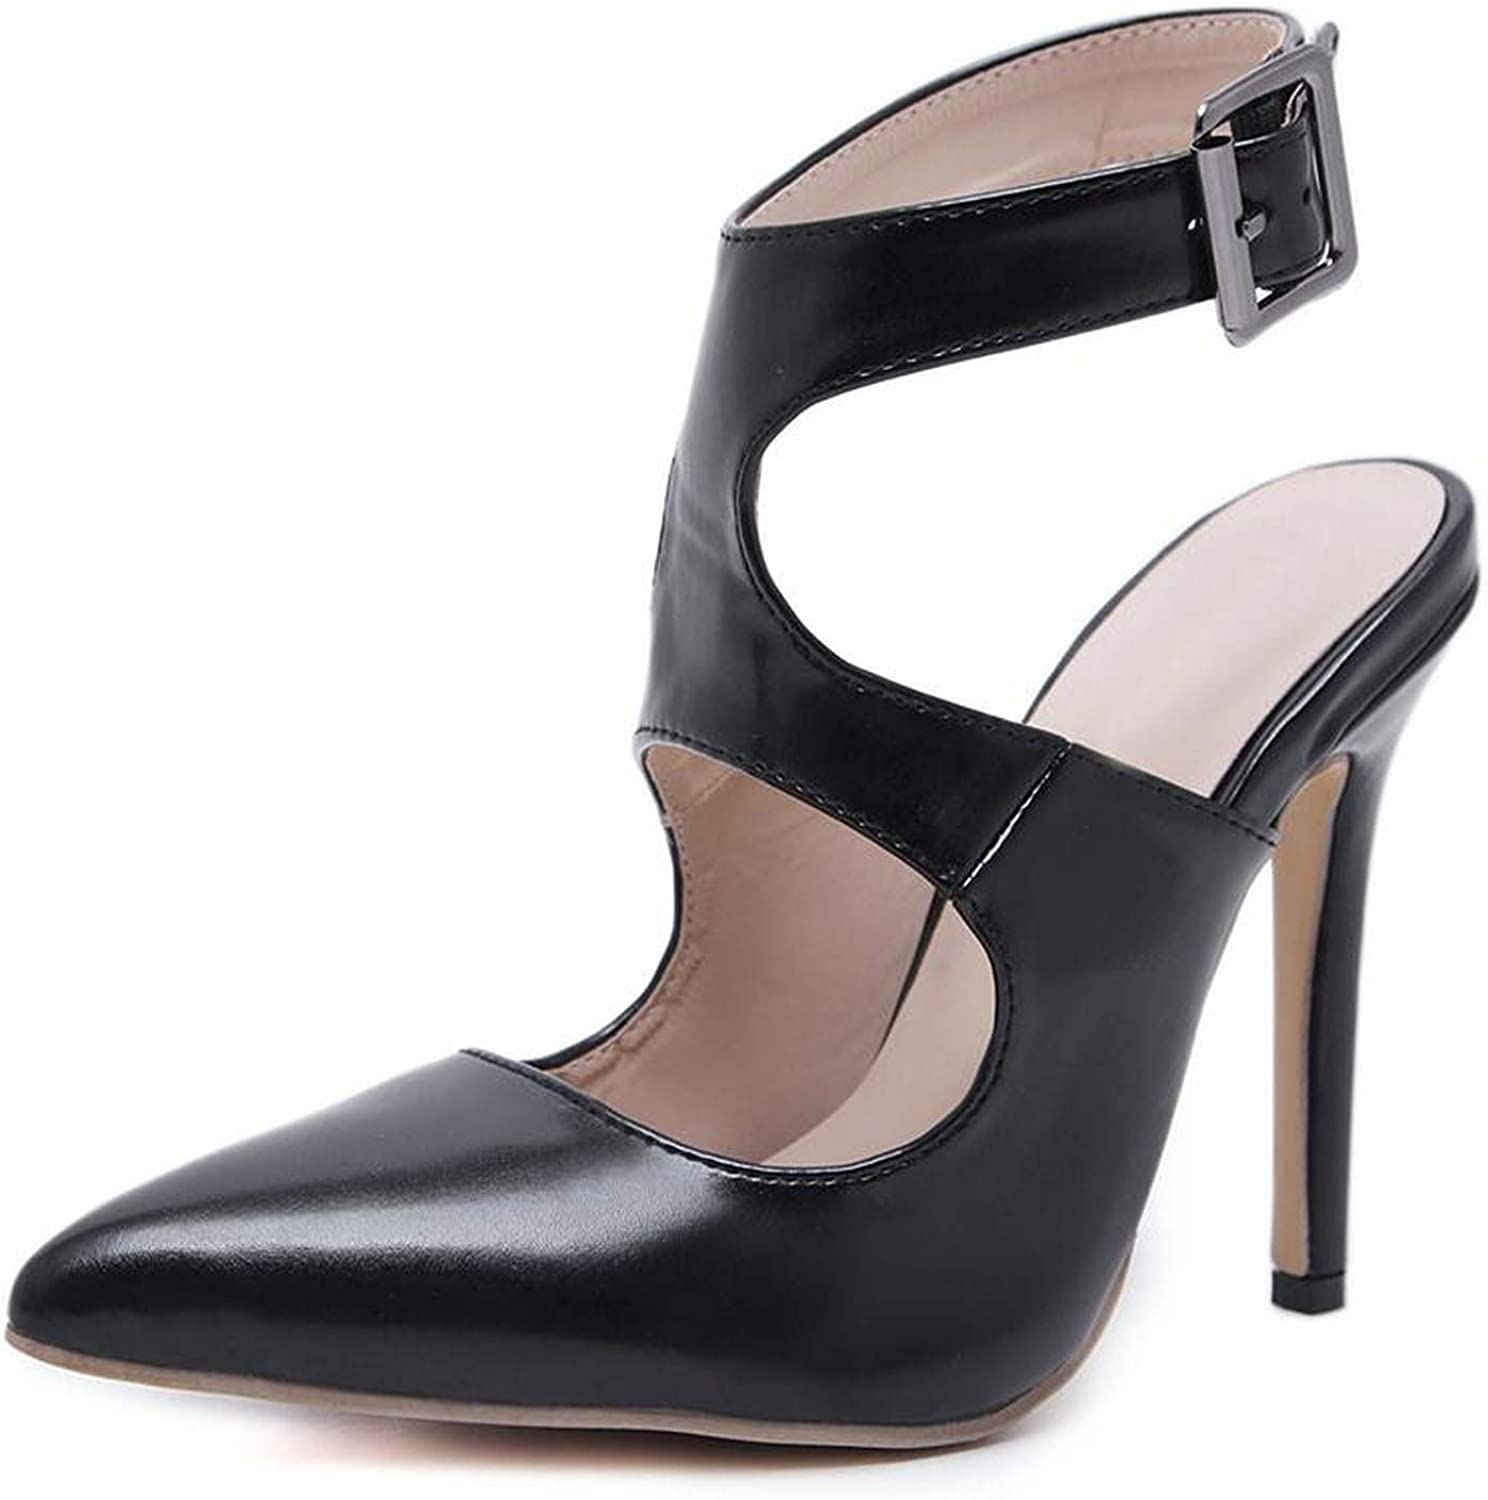 shoes Womens Pumps High Heels Summer Stiletto Heel Platform shoes Sexy Pointed Toe Woman Pumps